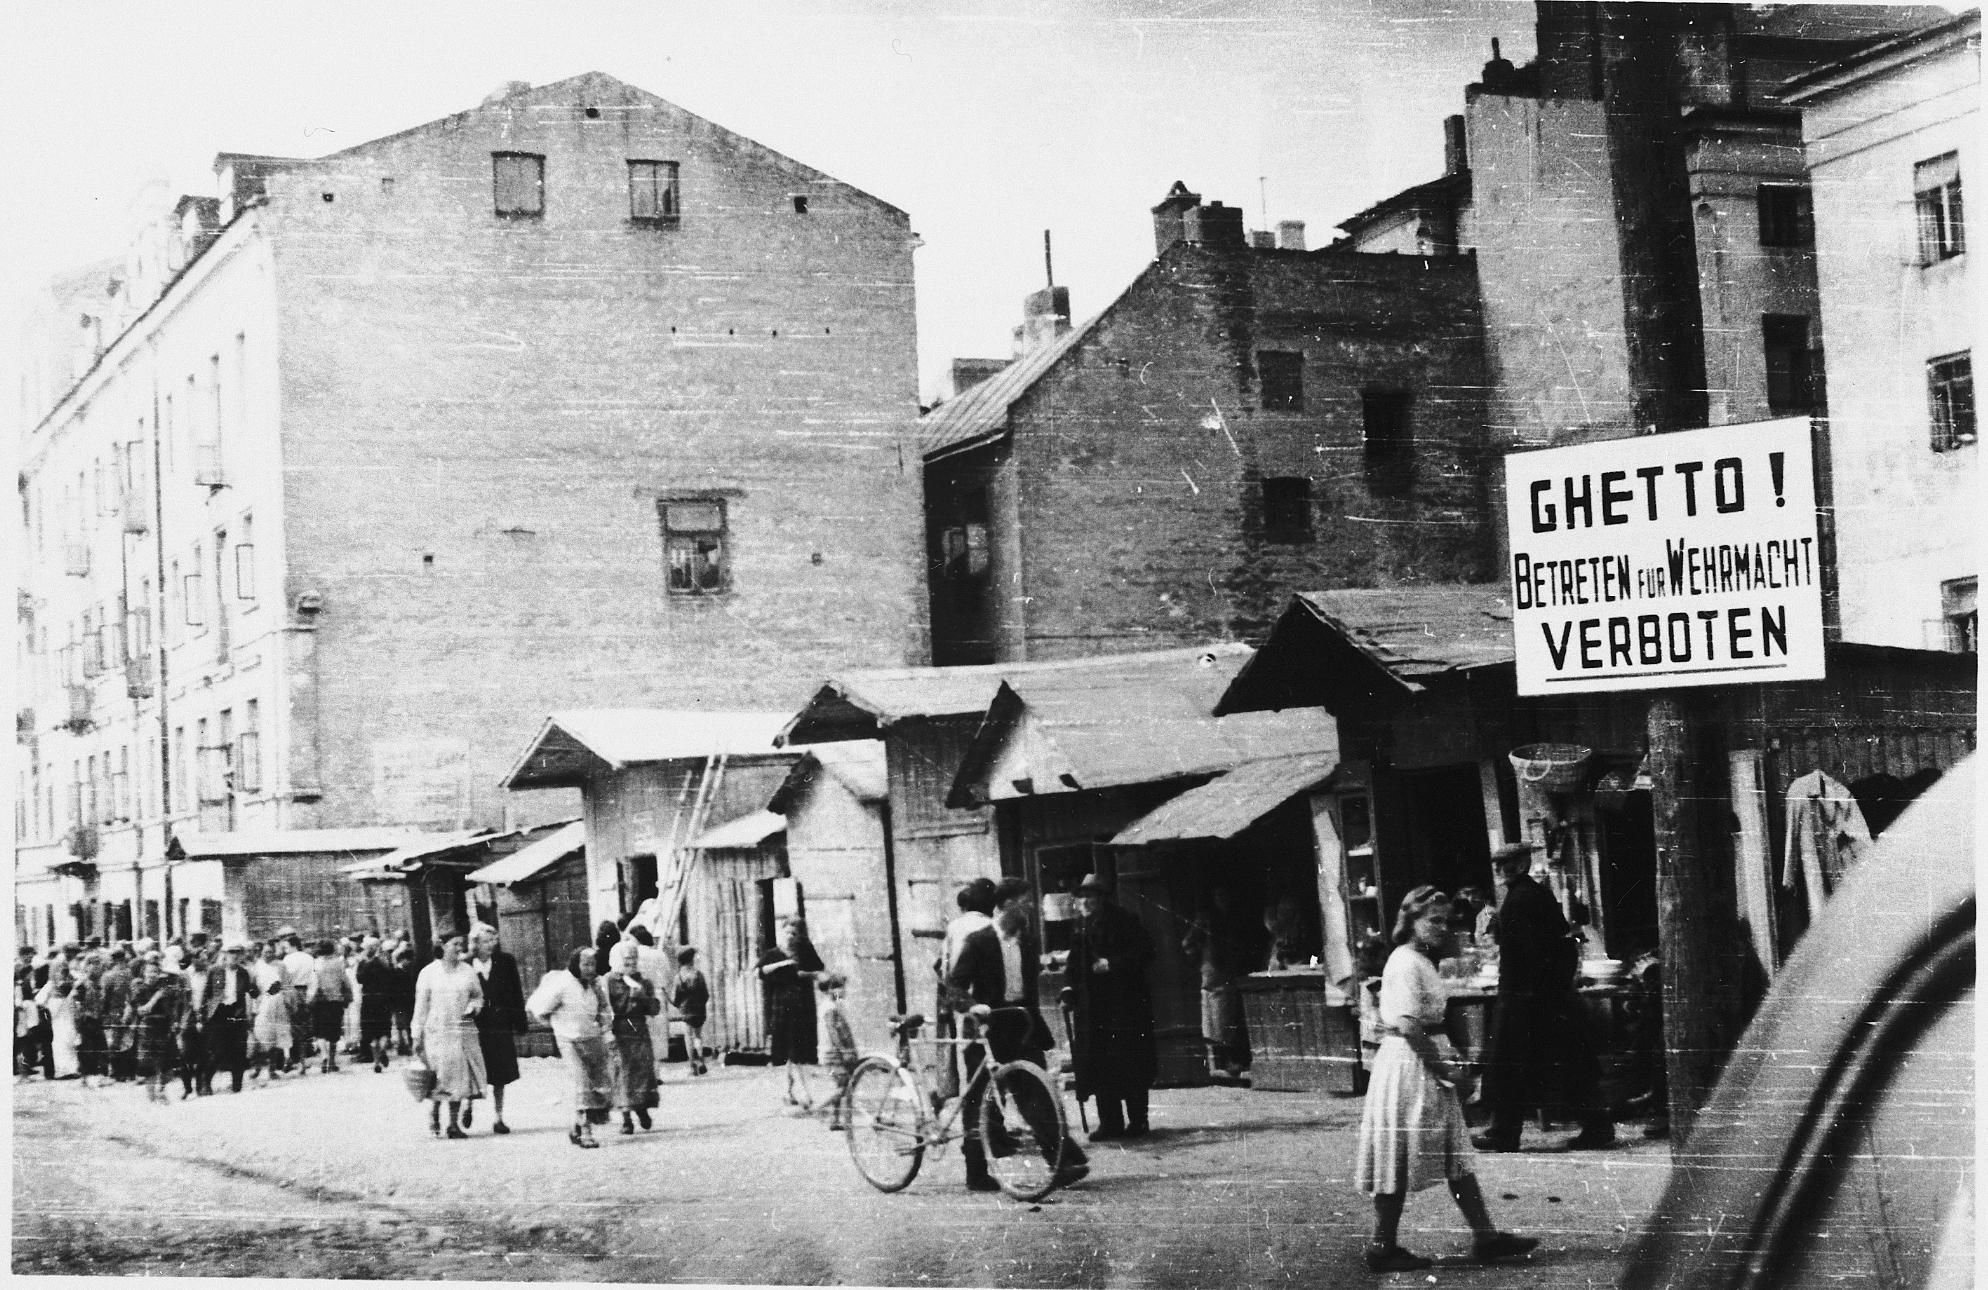 During World War II, Jewish Ghettos were city districts ...